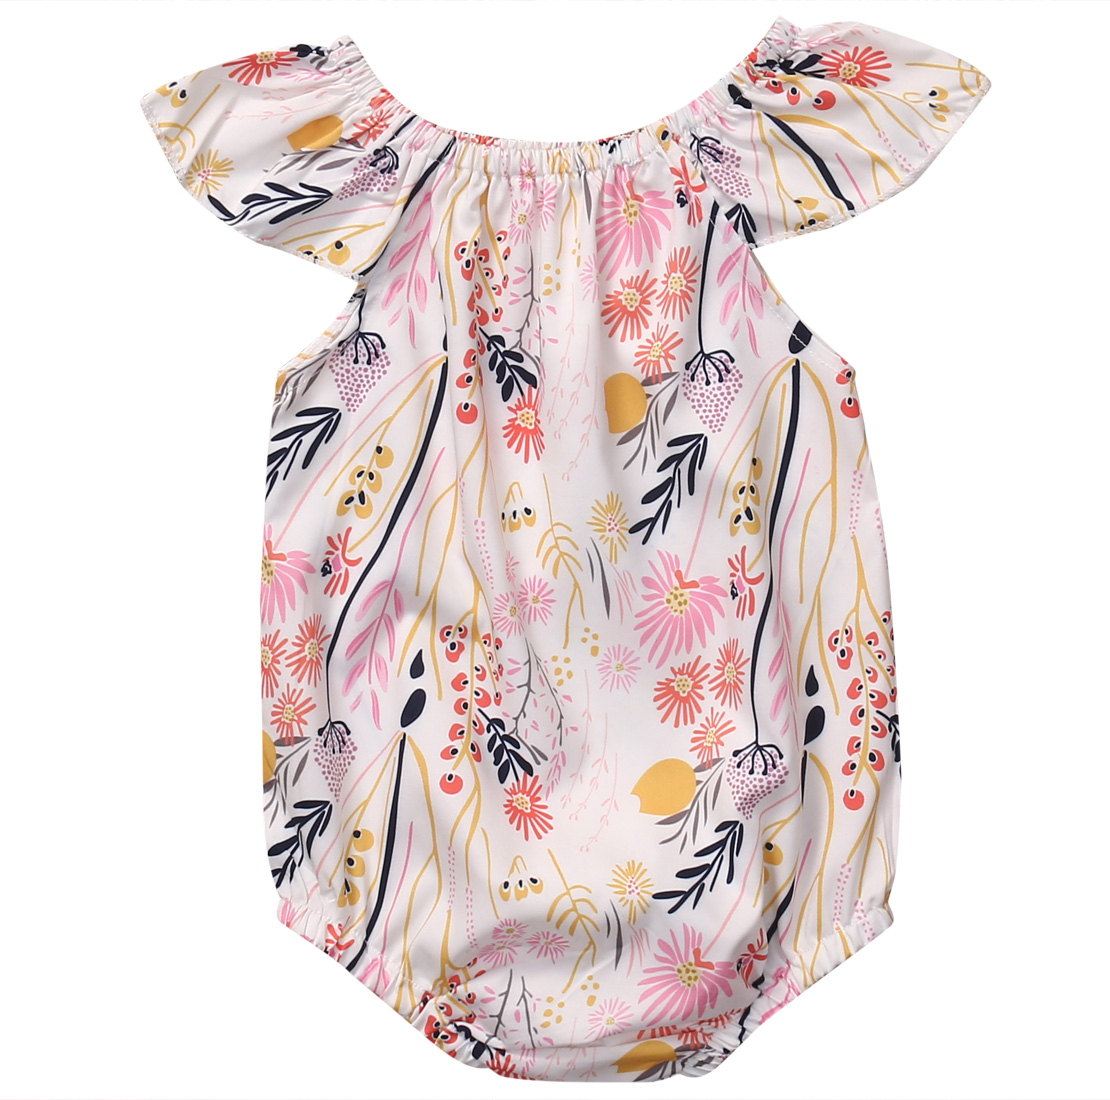 Newborn Infant Baby Girls Floral Romper Short Sleeve Jumpsuit Sunsuit Baby Summer Clothing